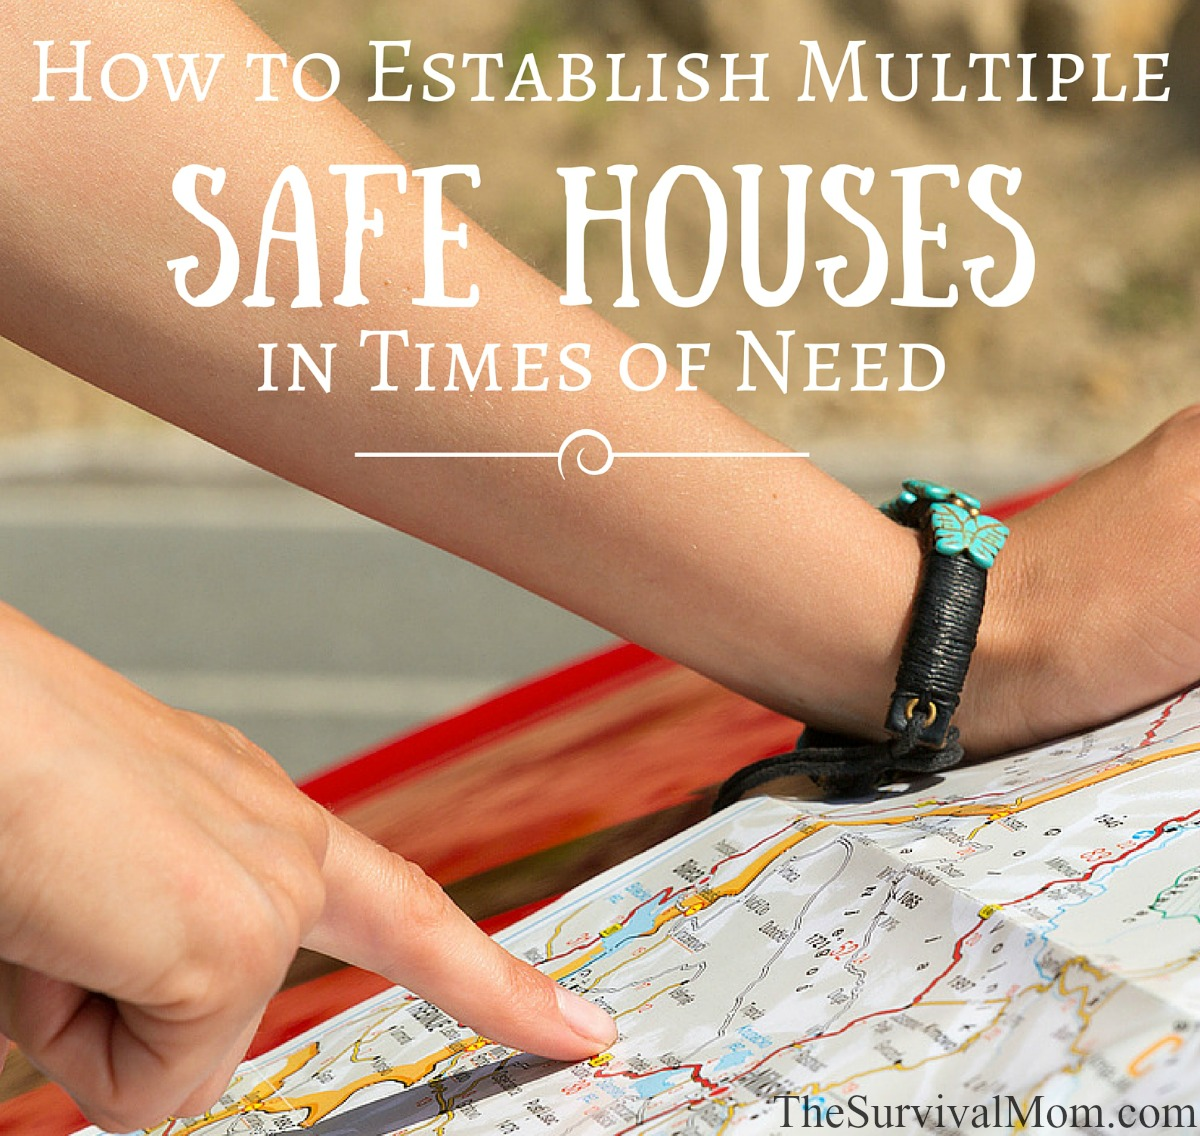 How to Establish Multiple Safe Houses in Times of Need via The Survival Mom